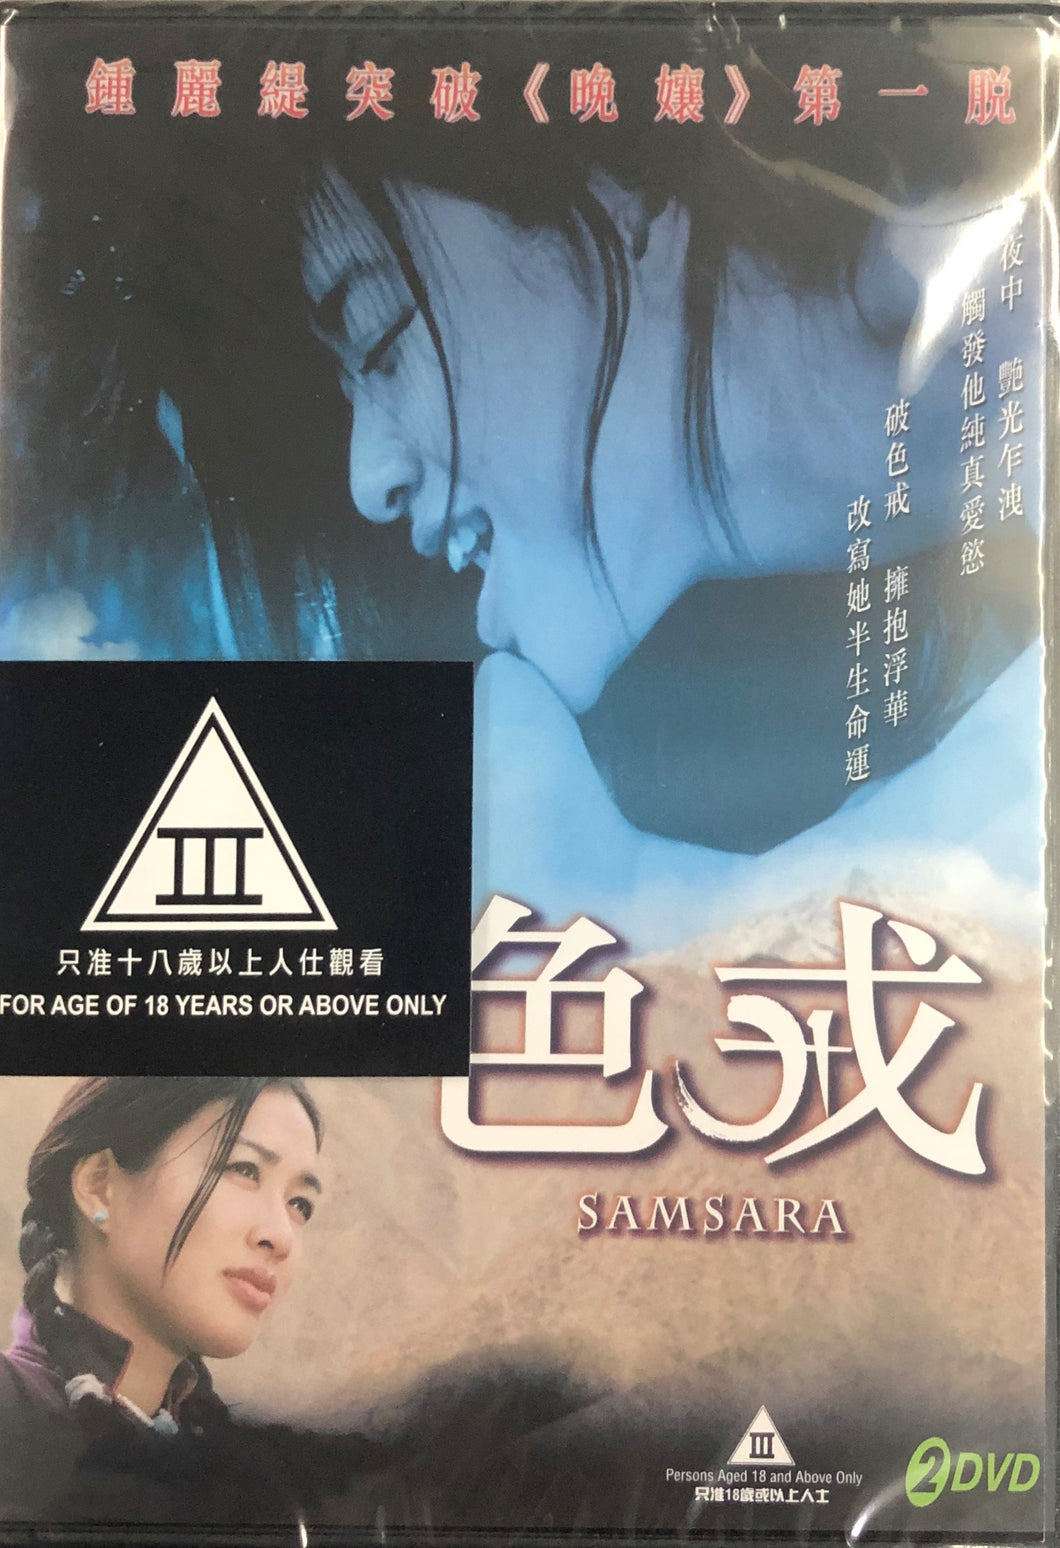 SAMSARA 色戒 2002 (HONG KONG MOVIE) DVD ENGLISH SUB (REGION FREE)